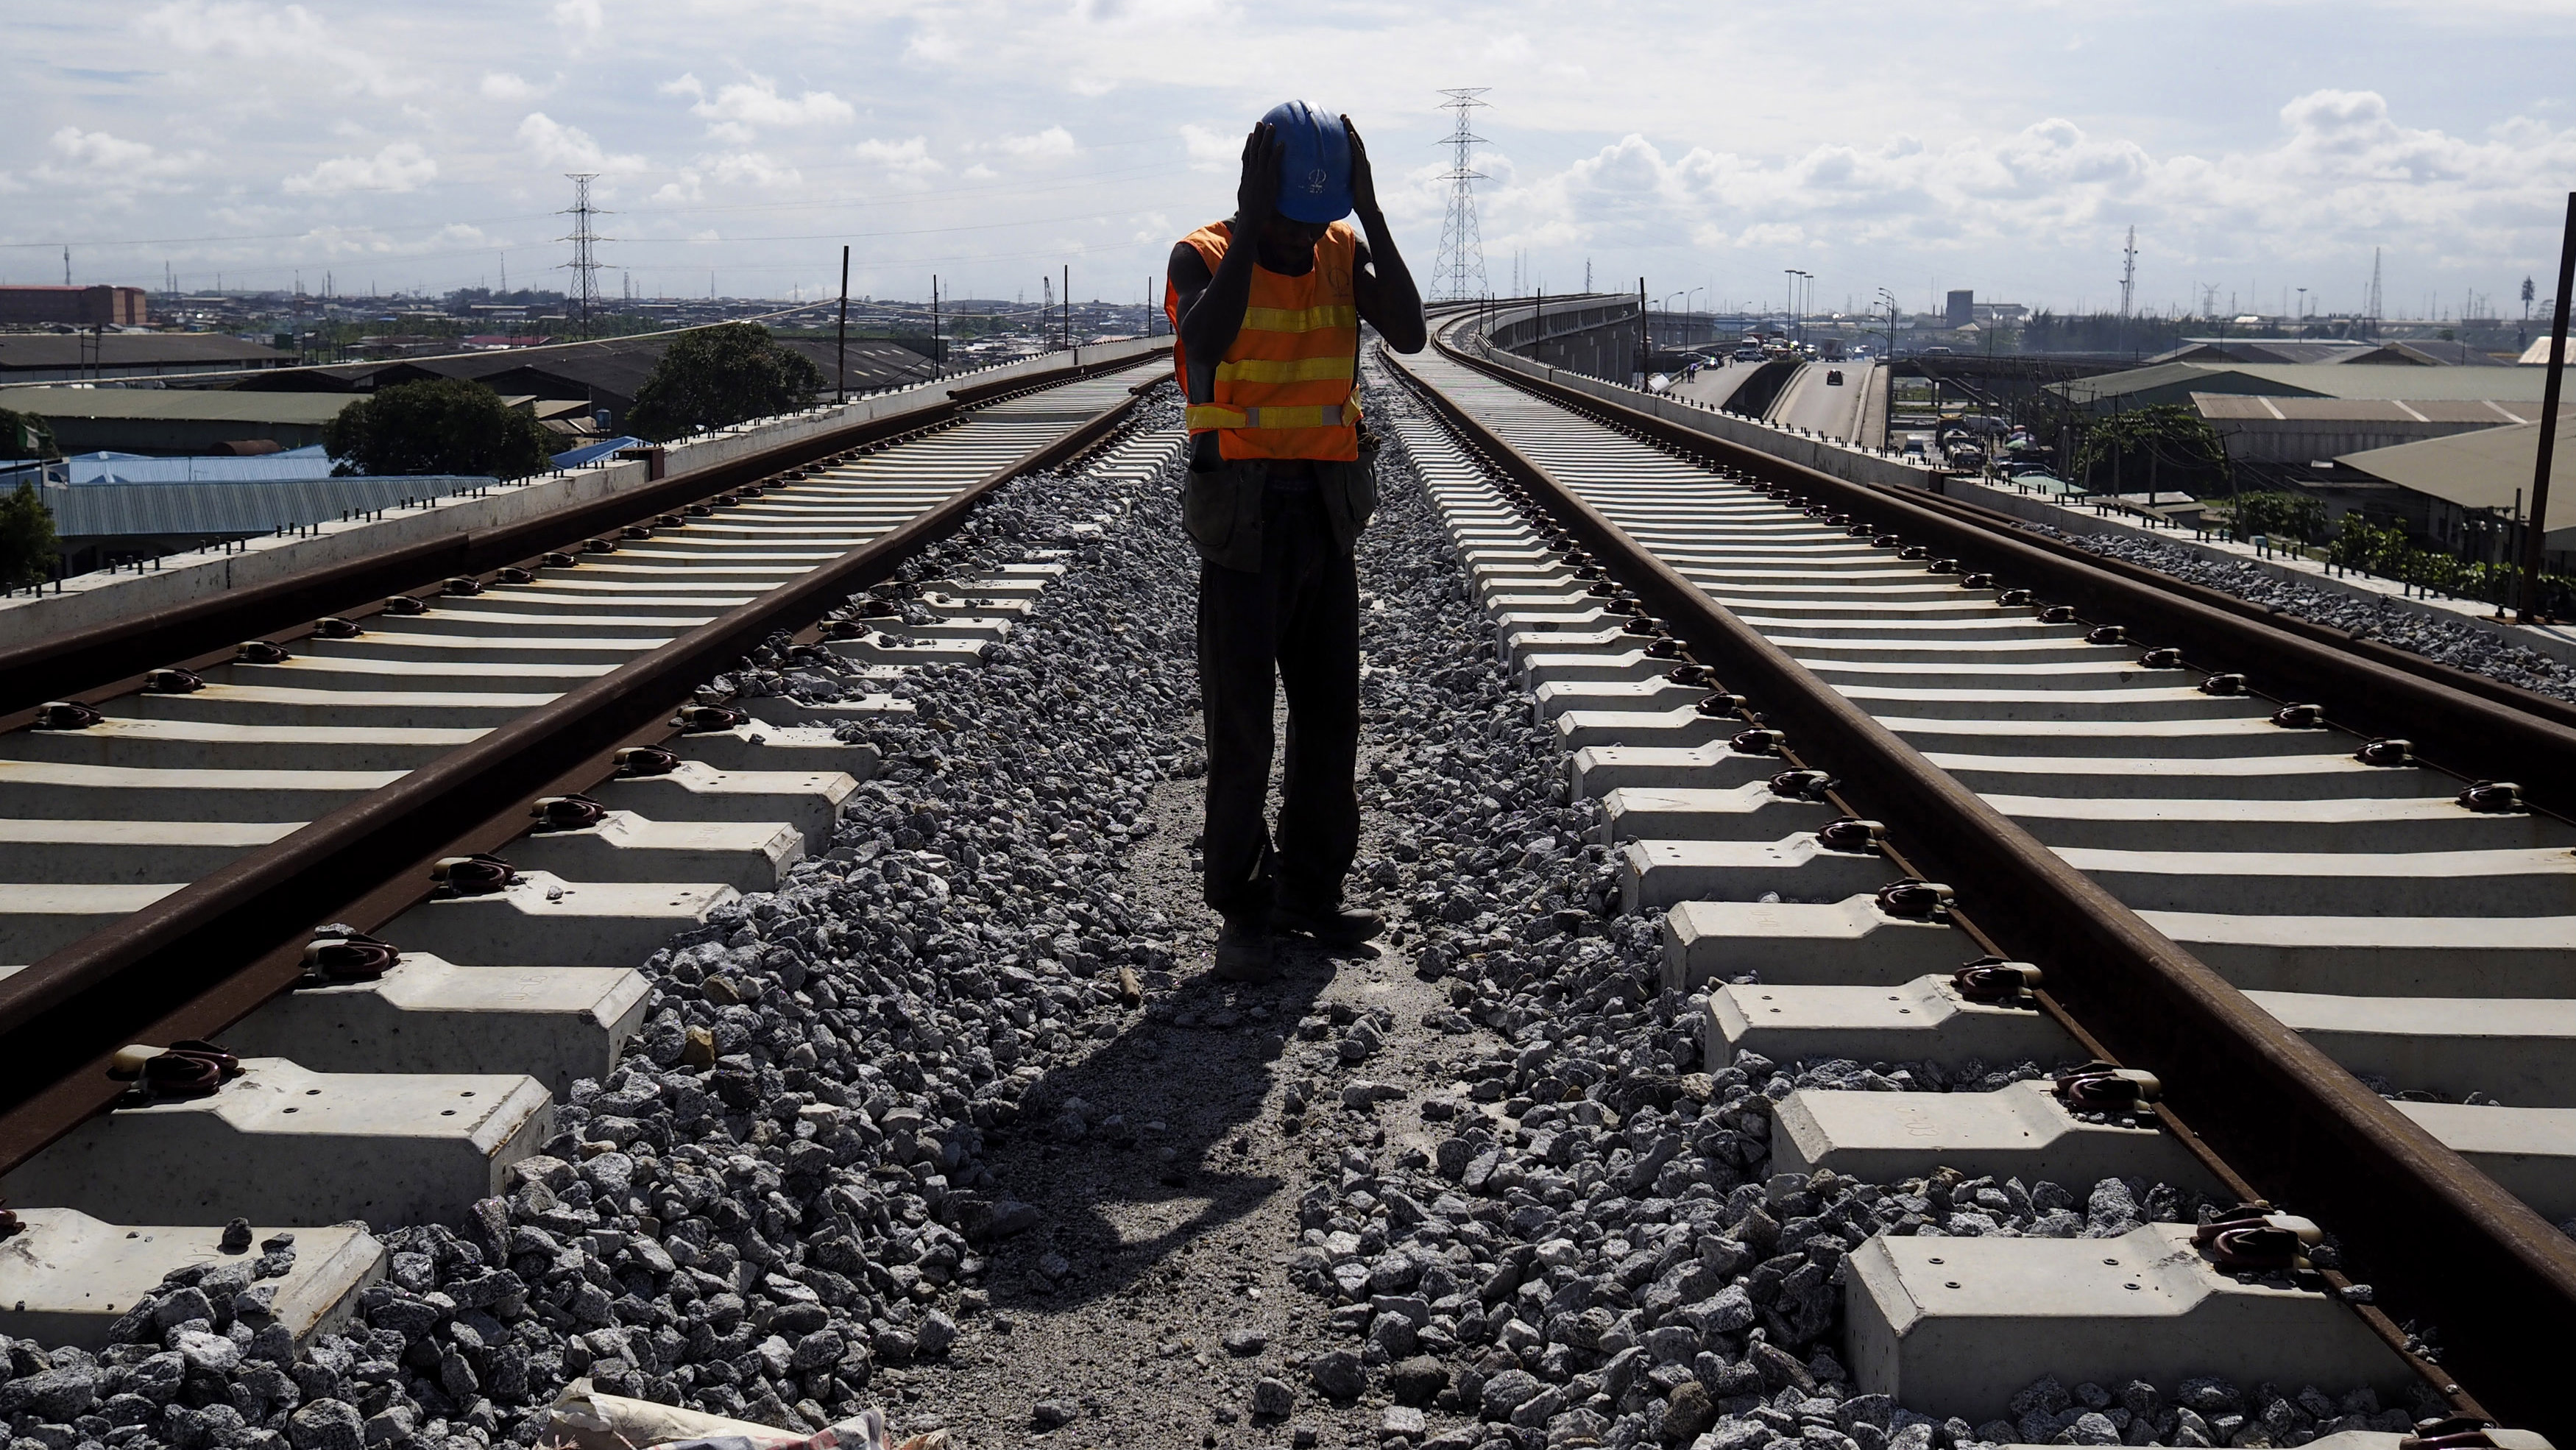 A worker adjusts his hard hat at the National Arts Theatre stop of the light rail system under construction in Lagos, Nigeria, May 30, 2014. Started in 2009 to ease traffic, Lagos state government is building a rail system with the China Civil Engineering Construction Corporation. The first test runs should start in 2015, according to an official at the National Arts Theatre work site.